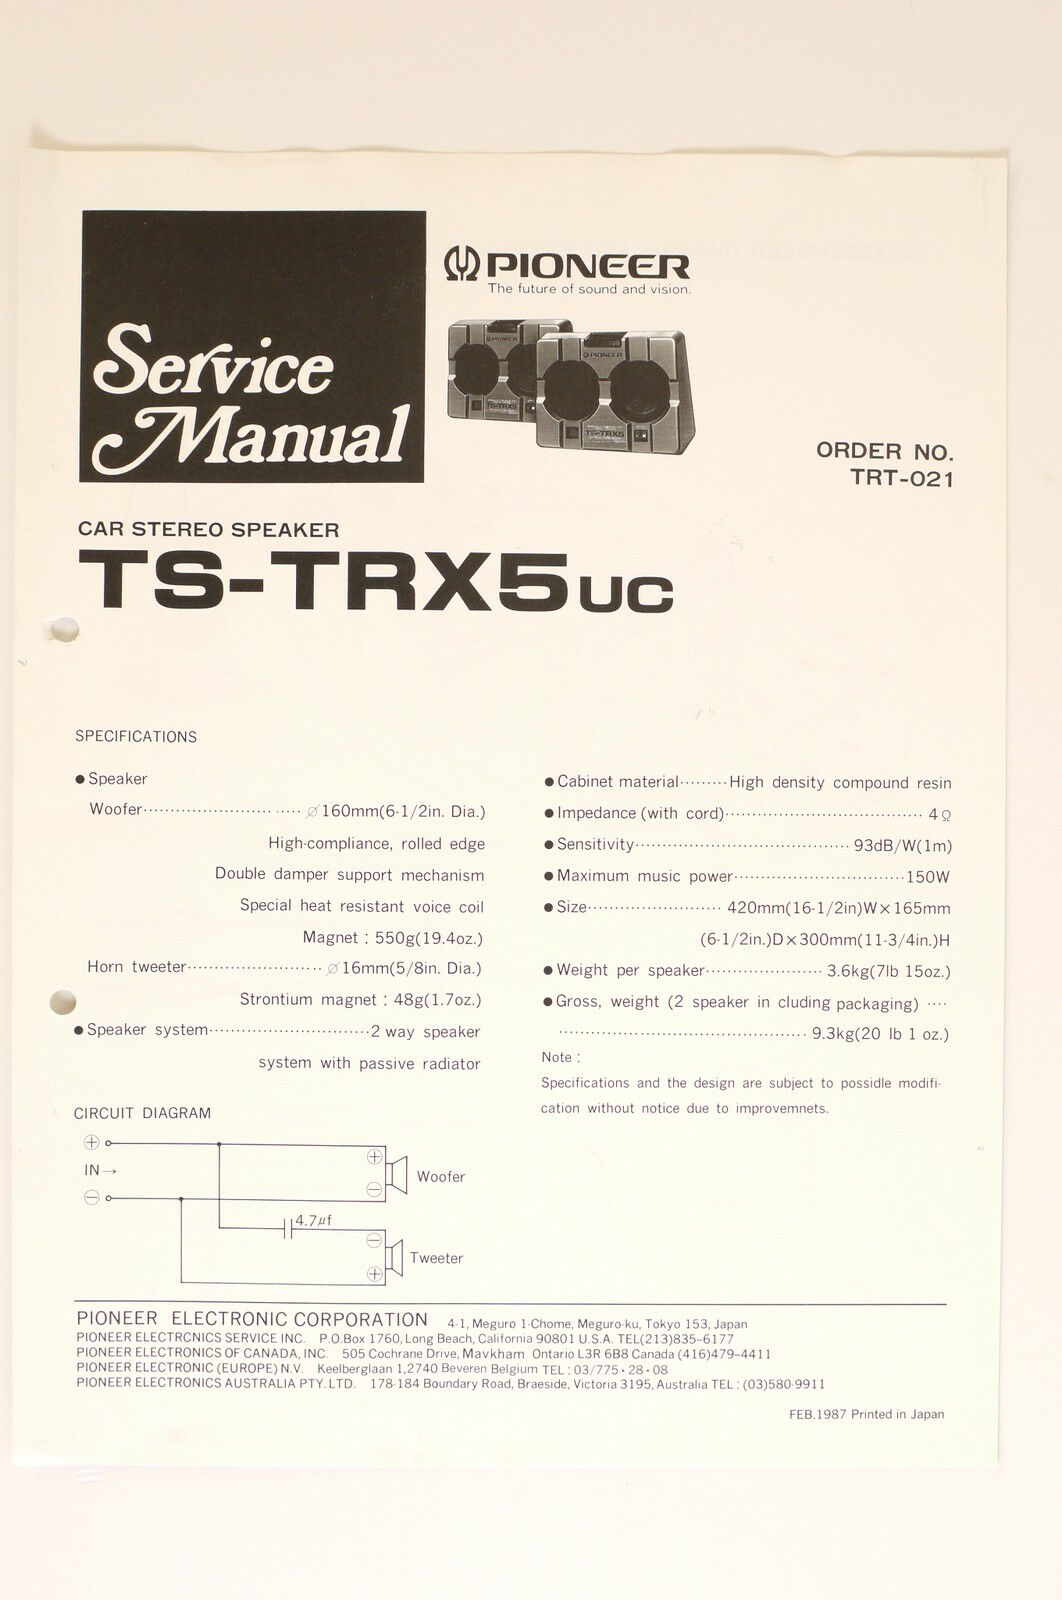 Pioneer Ts Trx5 Car Stereo Speaker Original Service Manual Wiring 2 Way Diagram 1 Of 1only Available